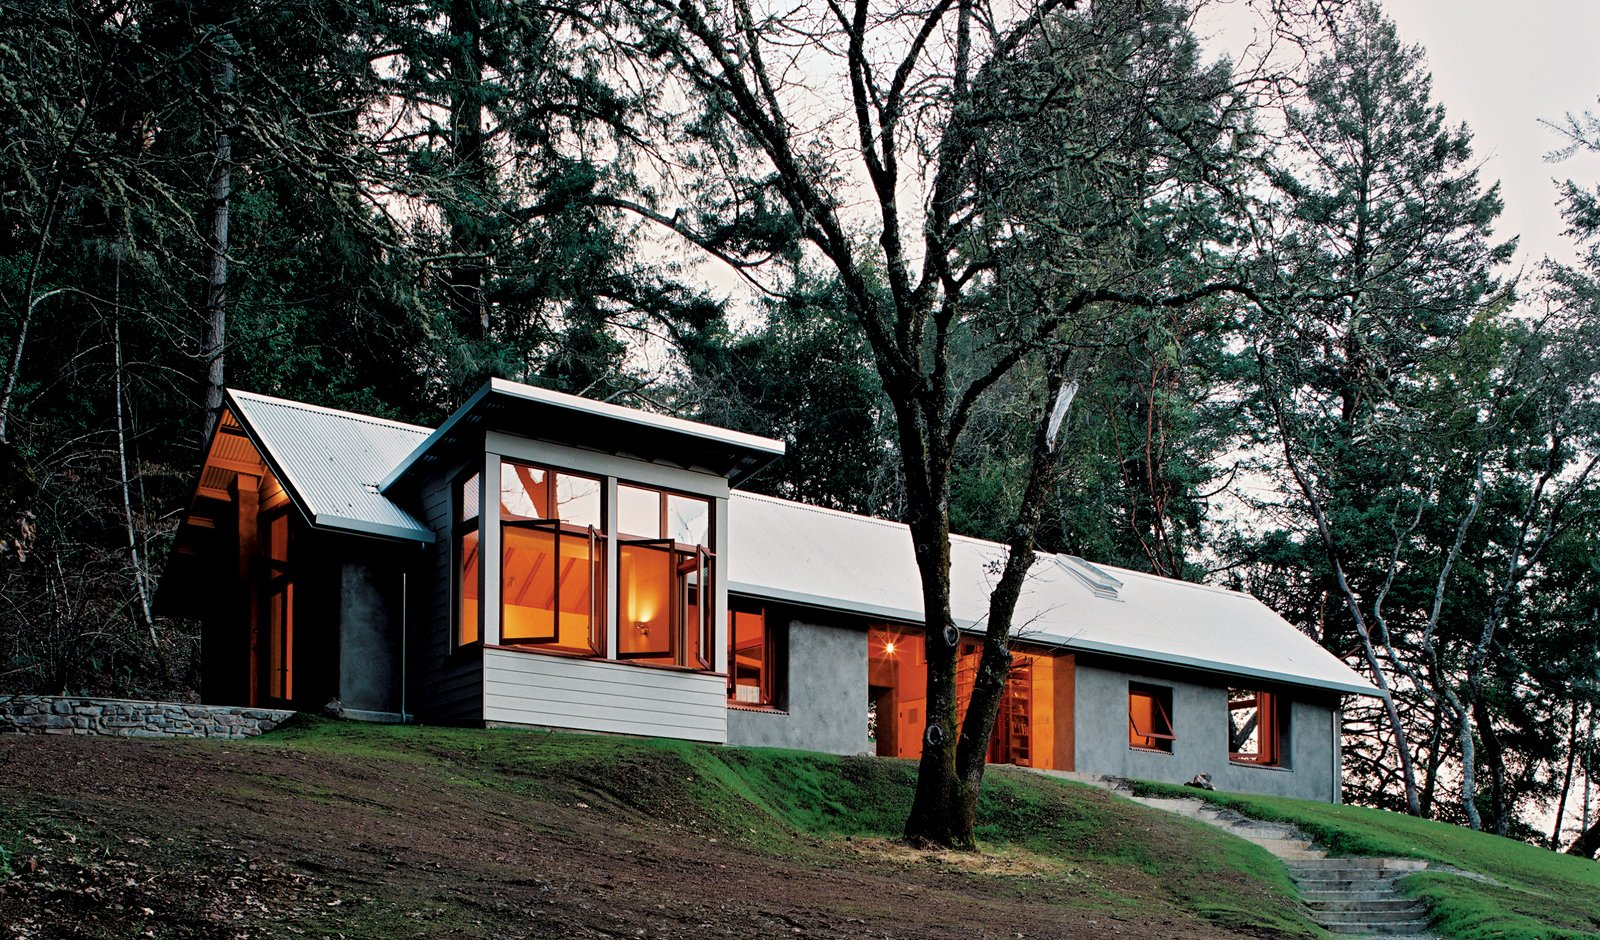 """Outdoor, Slope, Trees, and Woodland Ever aware of context, architect Henry Siegel says of his house, """"A lot of architects' buildings look better on a pedestal than in context. Our design would look out of place on a pedestal—we placed it so it really fits its specific site.""""  Photo 3 of 5 in Hay Is for Horses, Straw Is for Houses"""